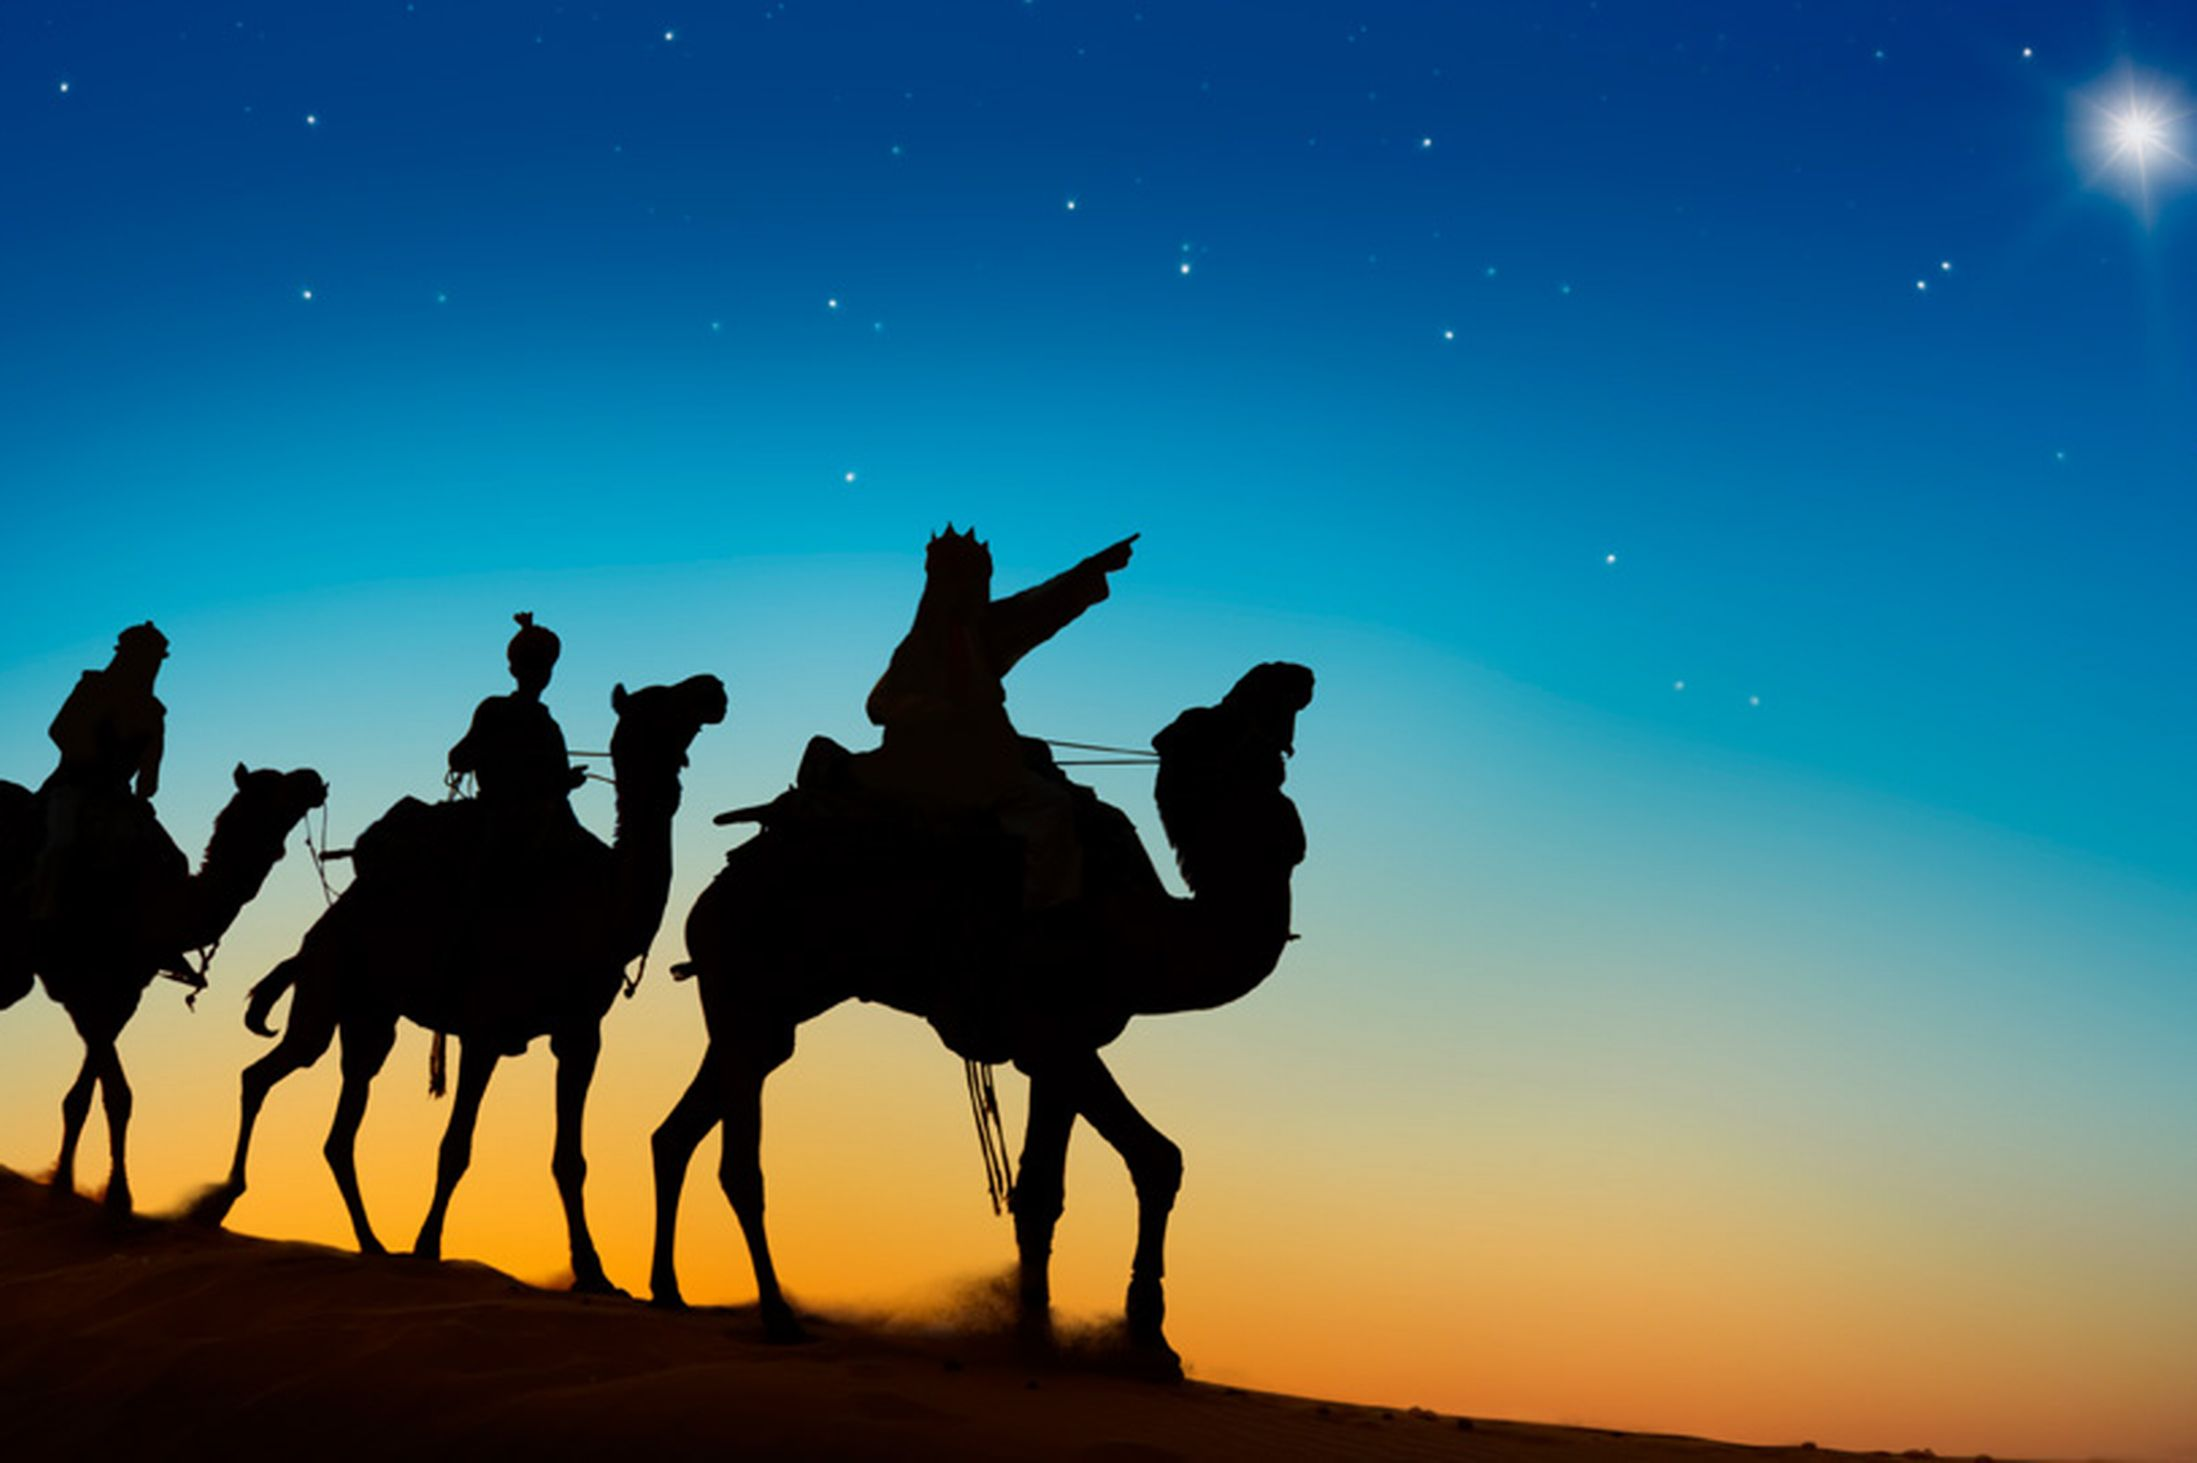 Who are the wise men 69